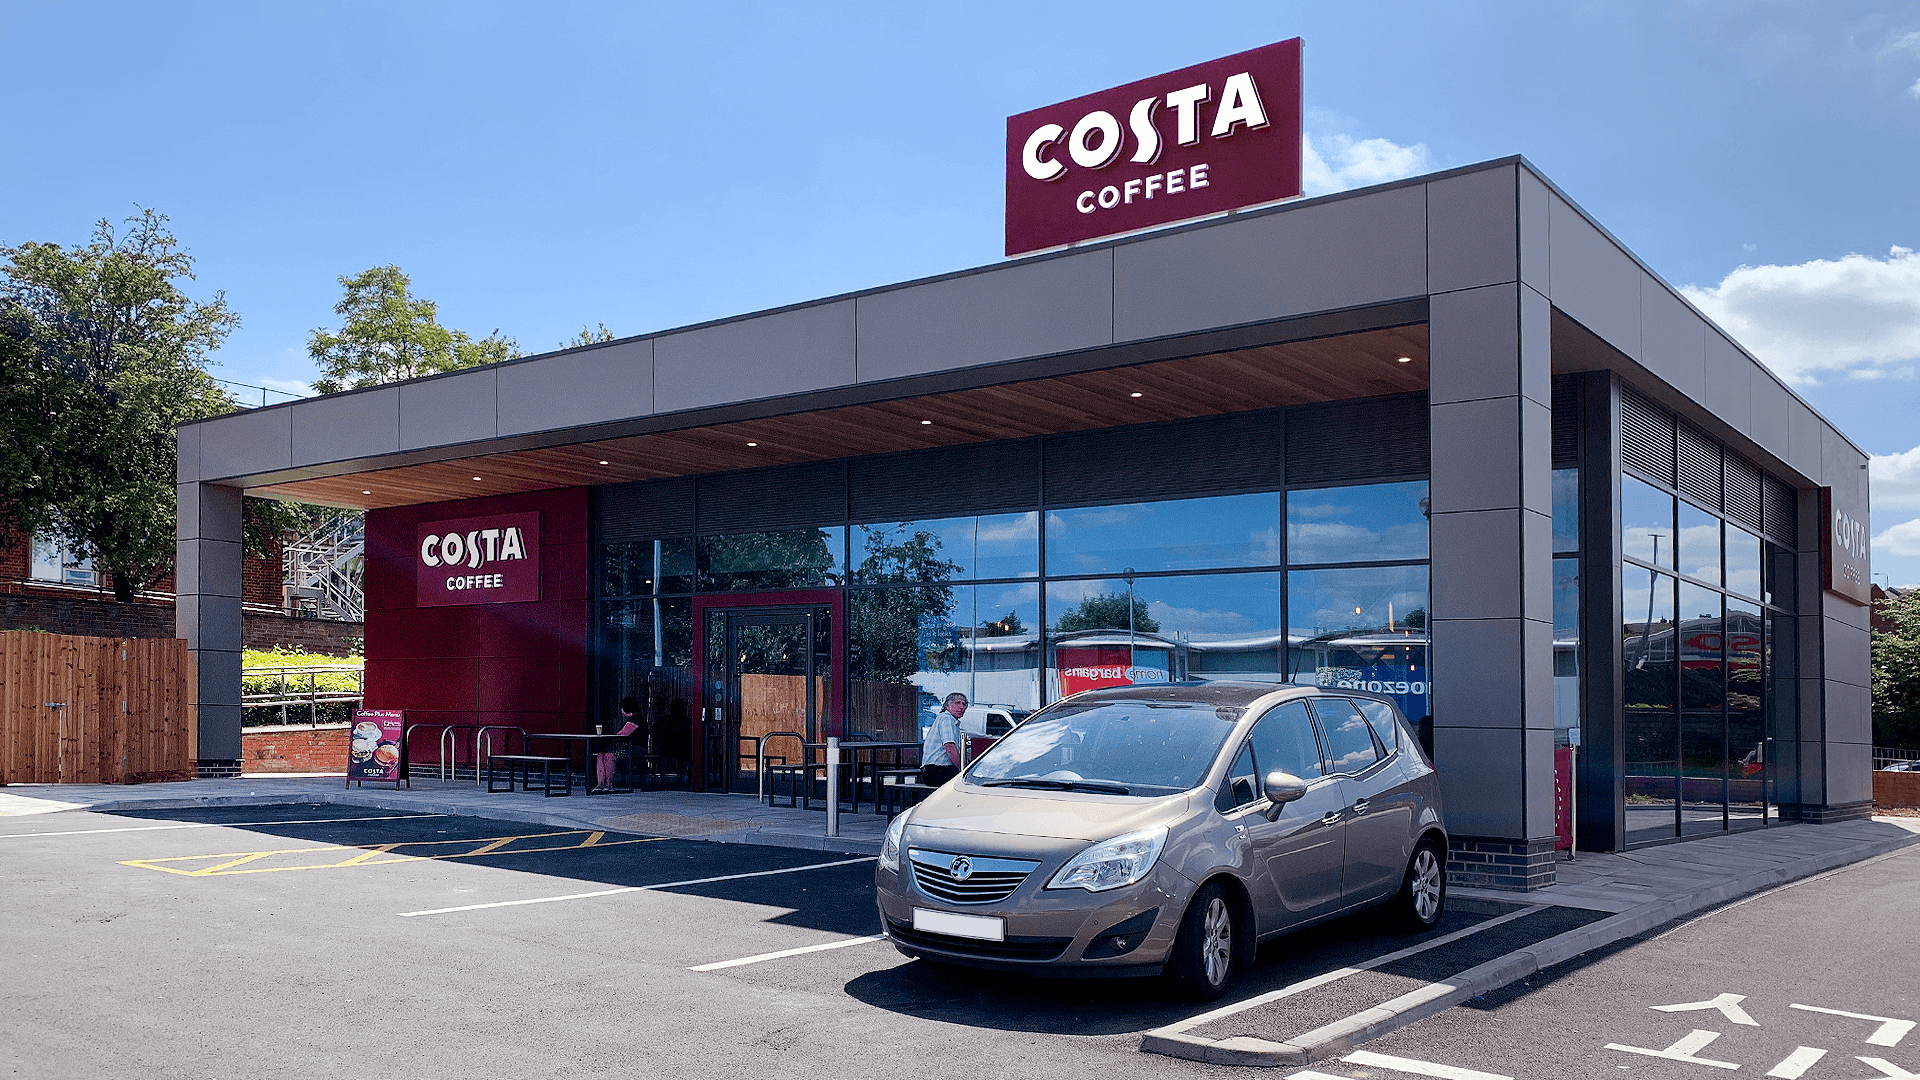 Costa, Heanor